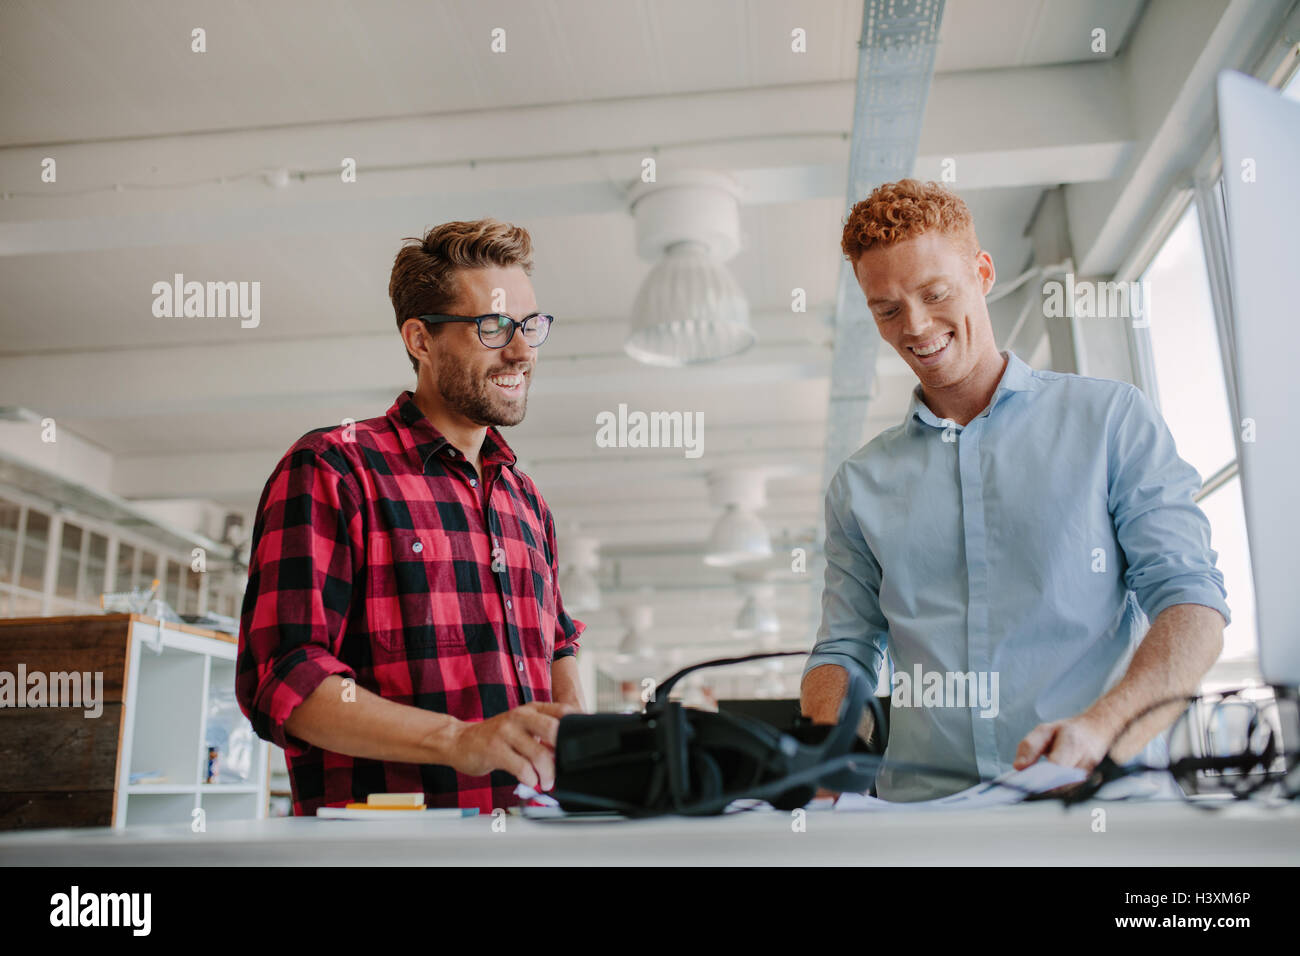 Shot of happy young man working together in modern office. Team of developers working on testing new virtual reality - Stock Image